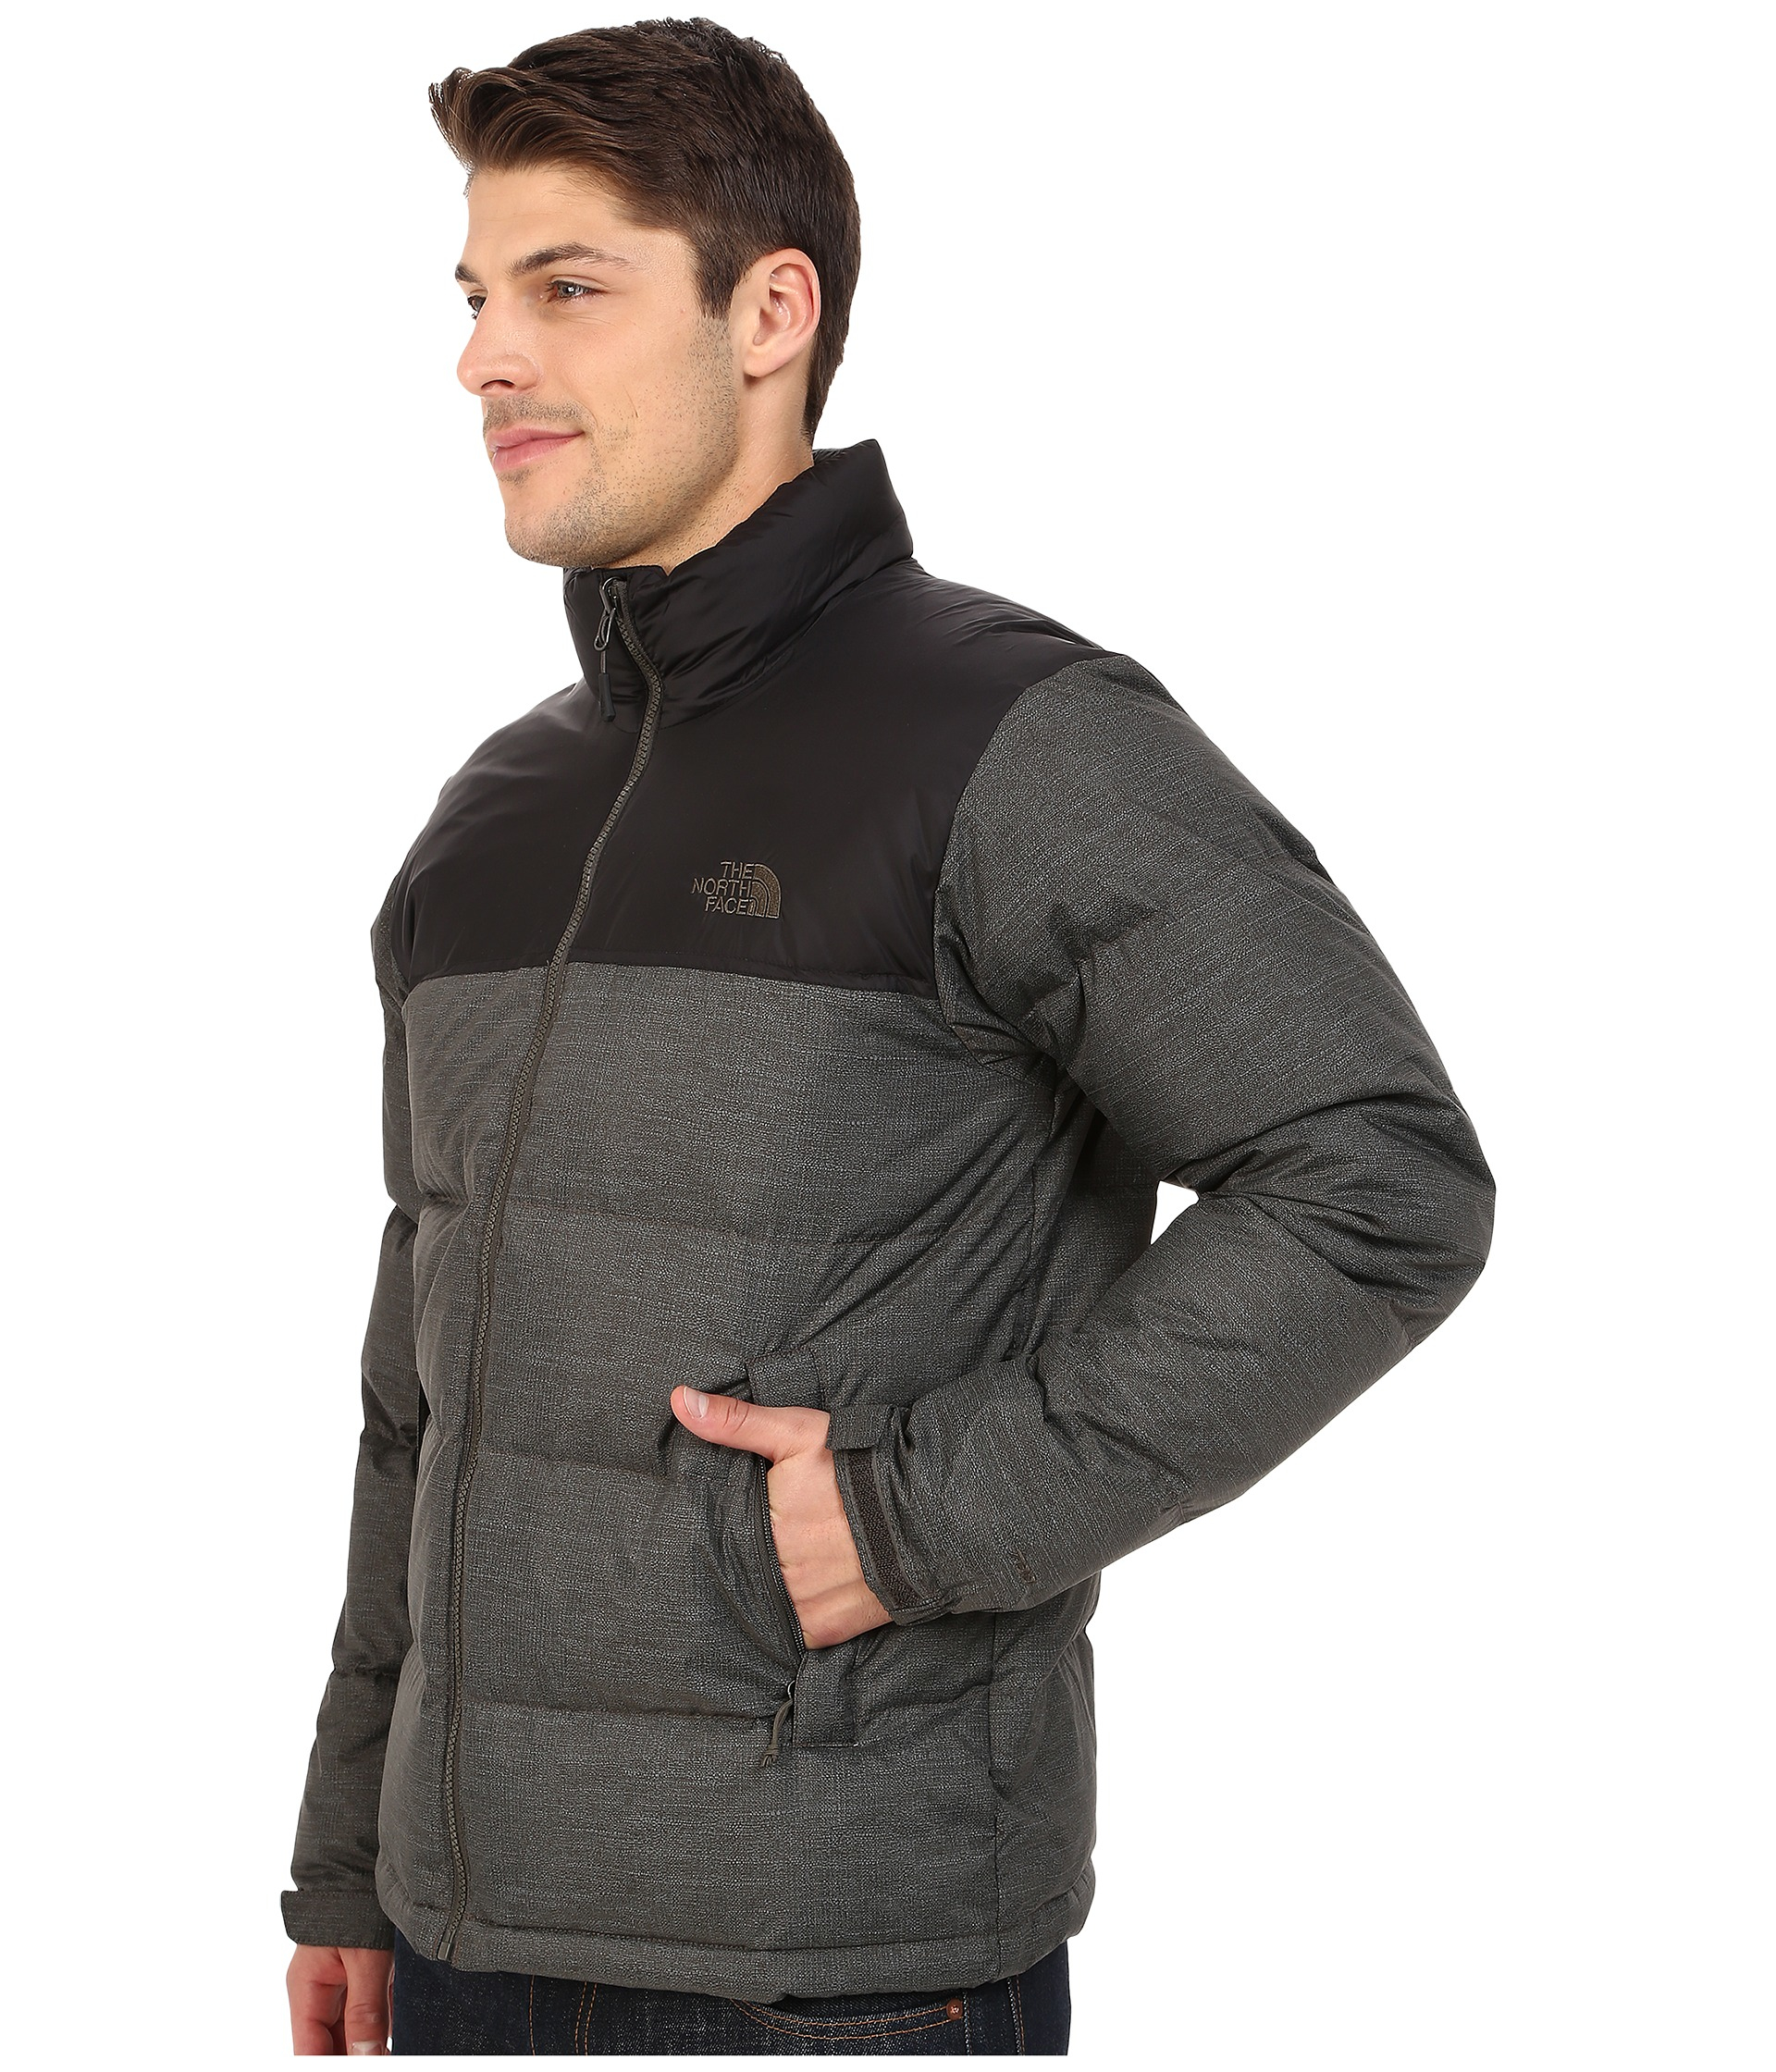 c393ad8d07 ... best price lyst the north face nuptse jacket in black for men 7a430  e3c43